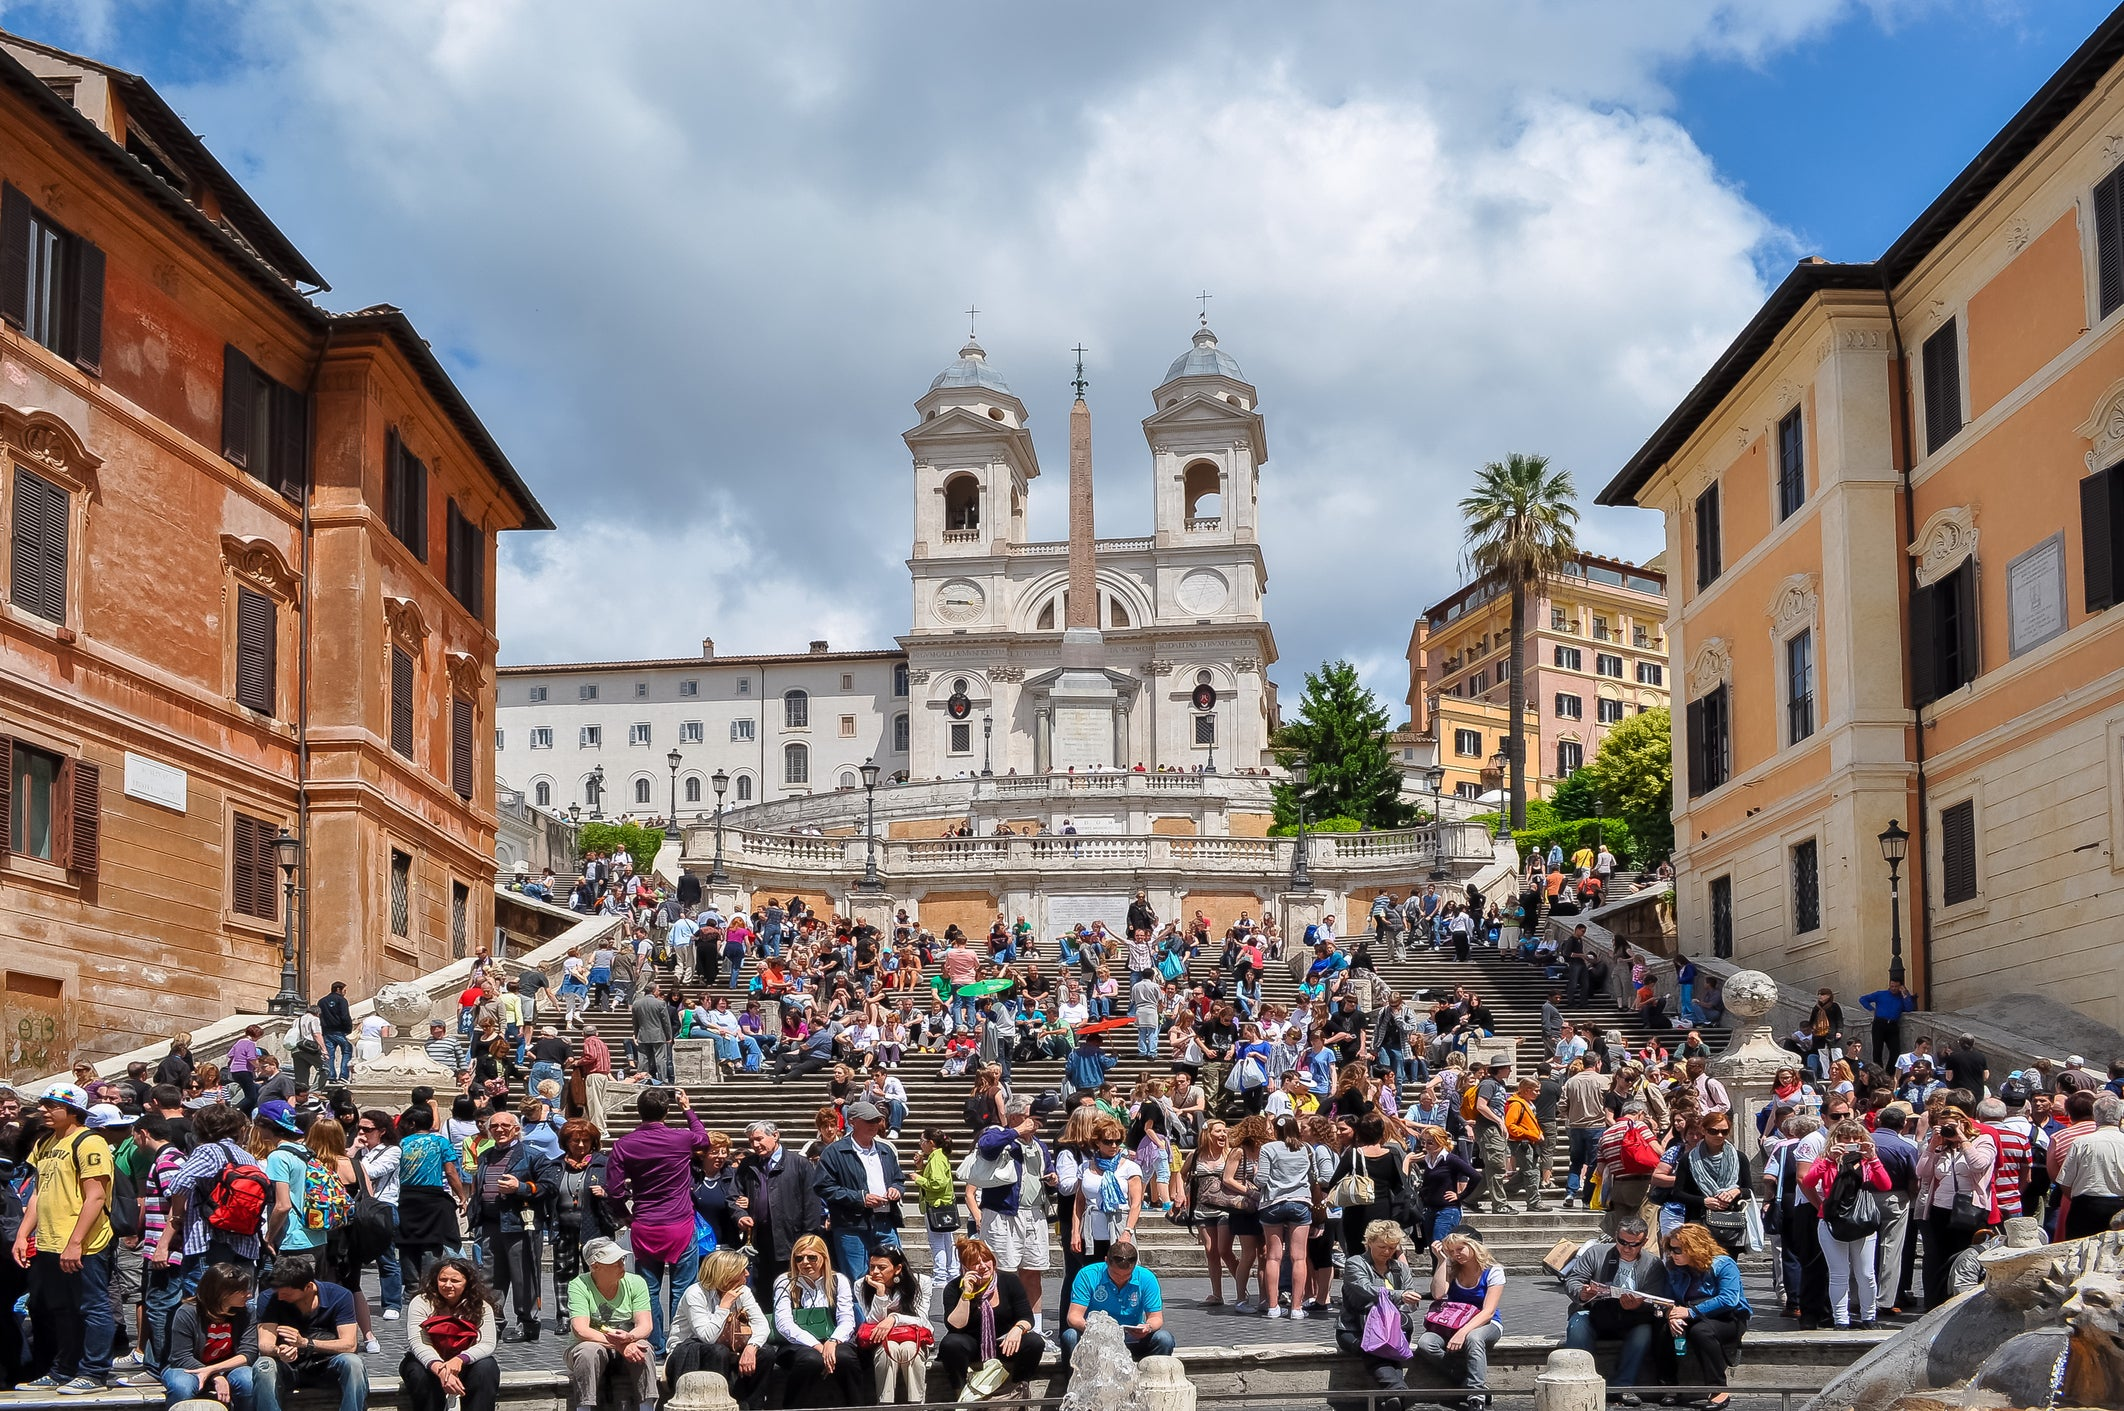 Rome bans people sitting down on famous landmarks